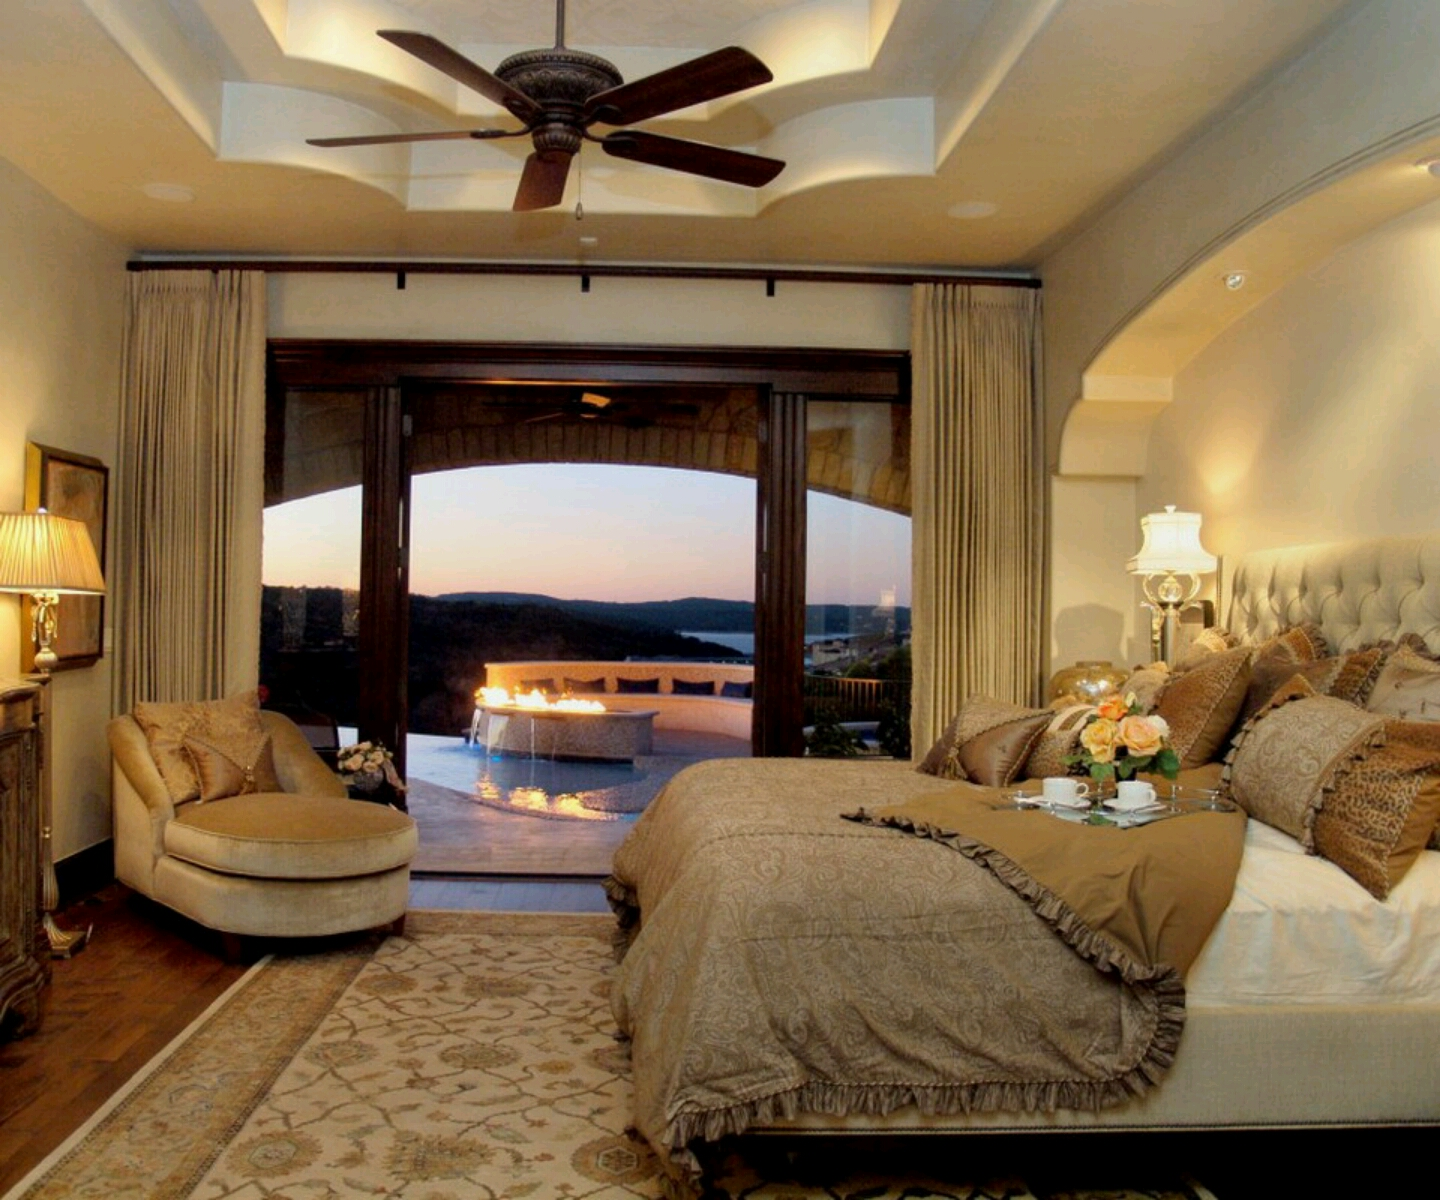 New home designs latest modern bedrooms designs ceiling designs ideas - Latest design of bedroom ...